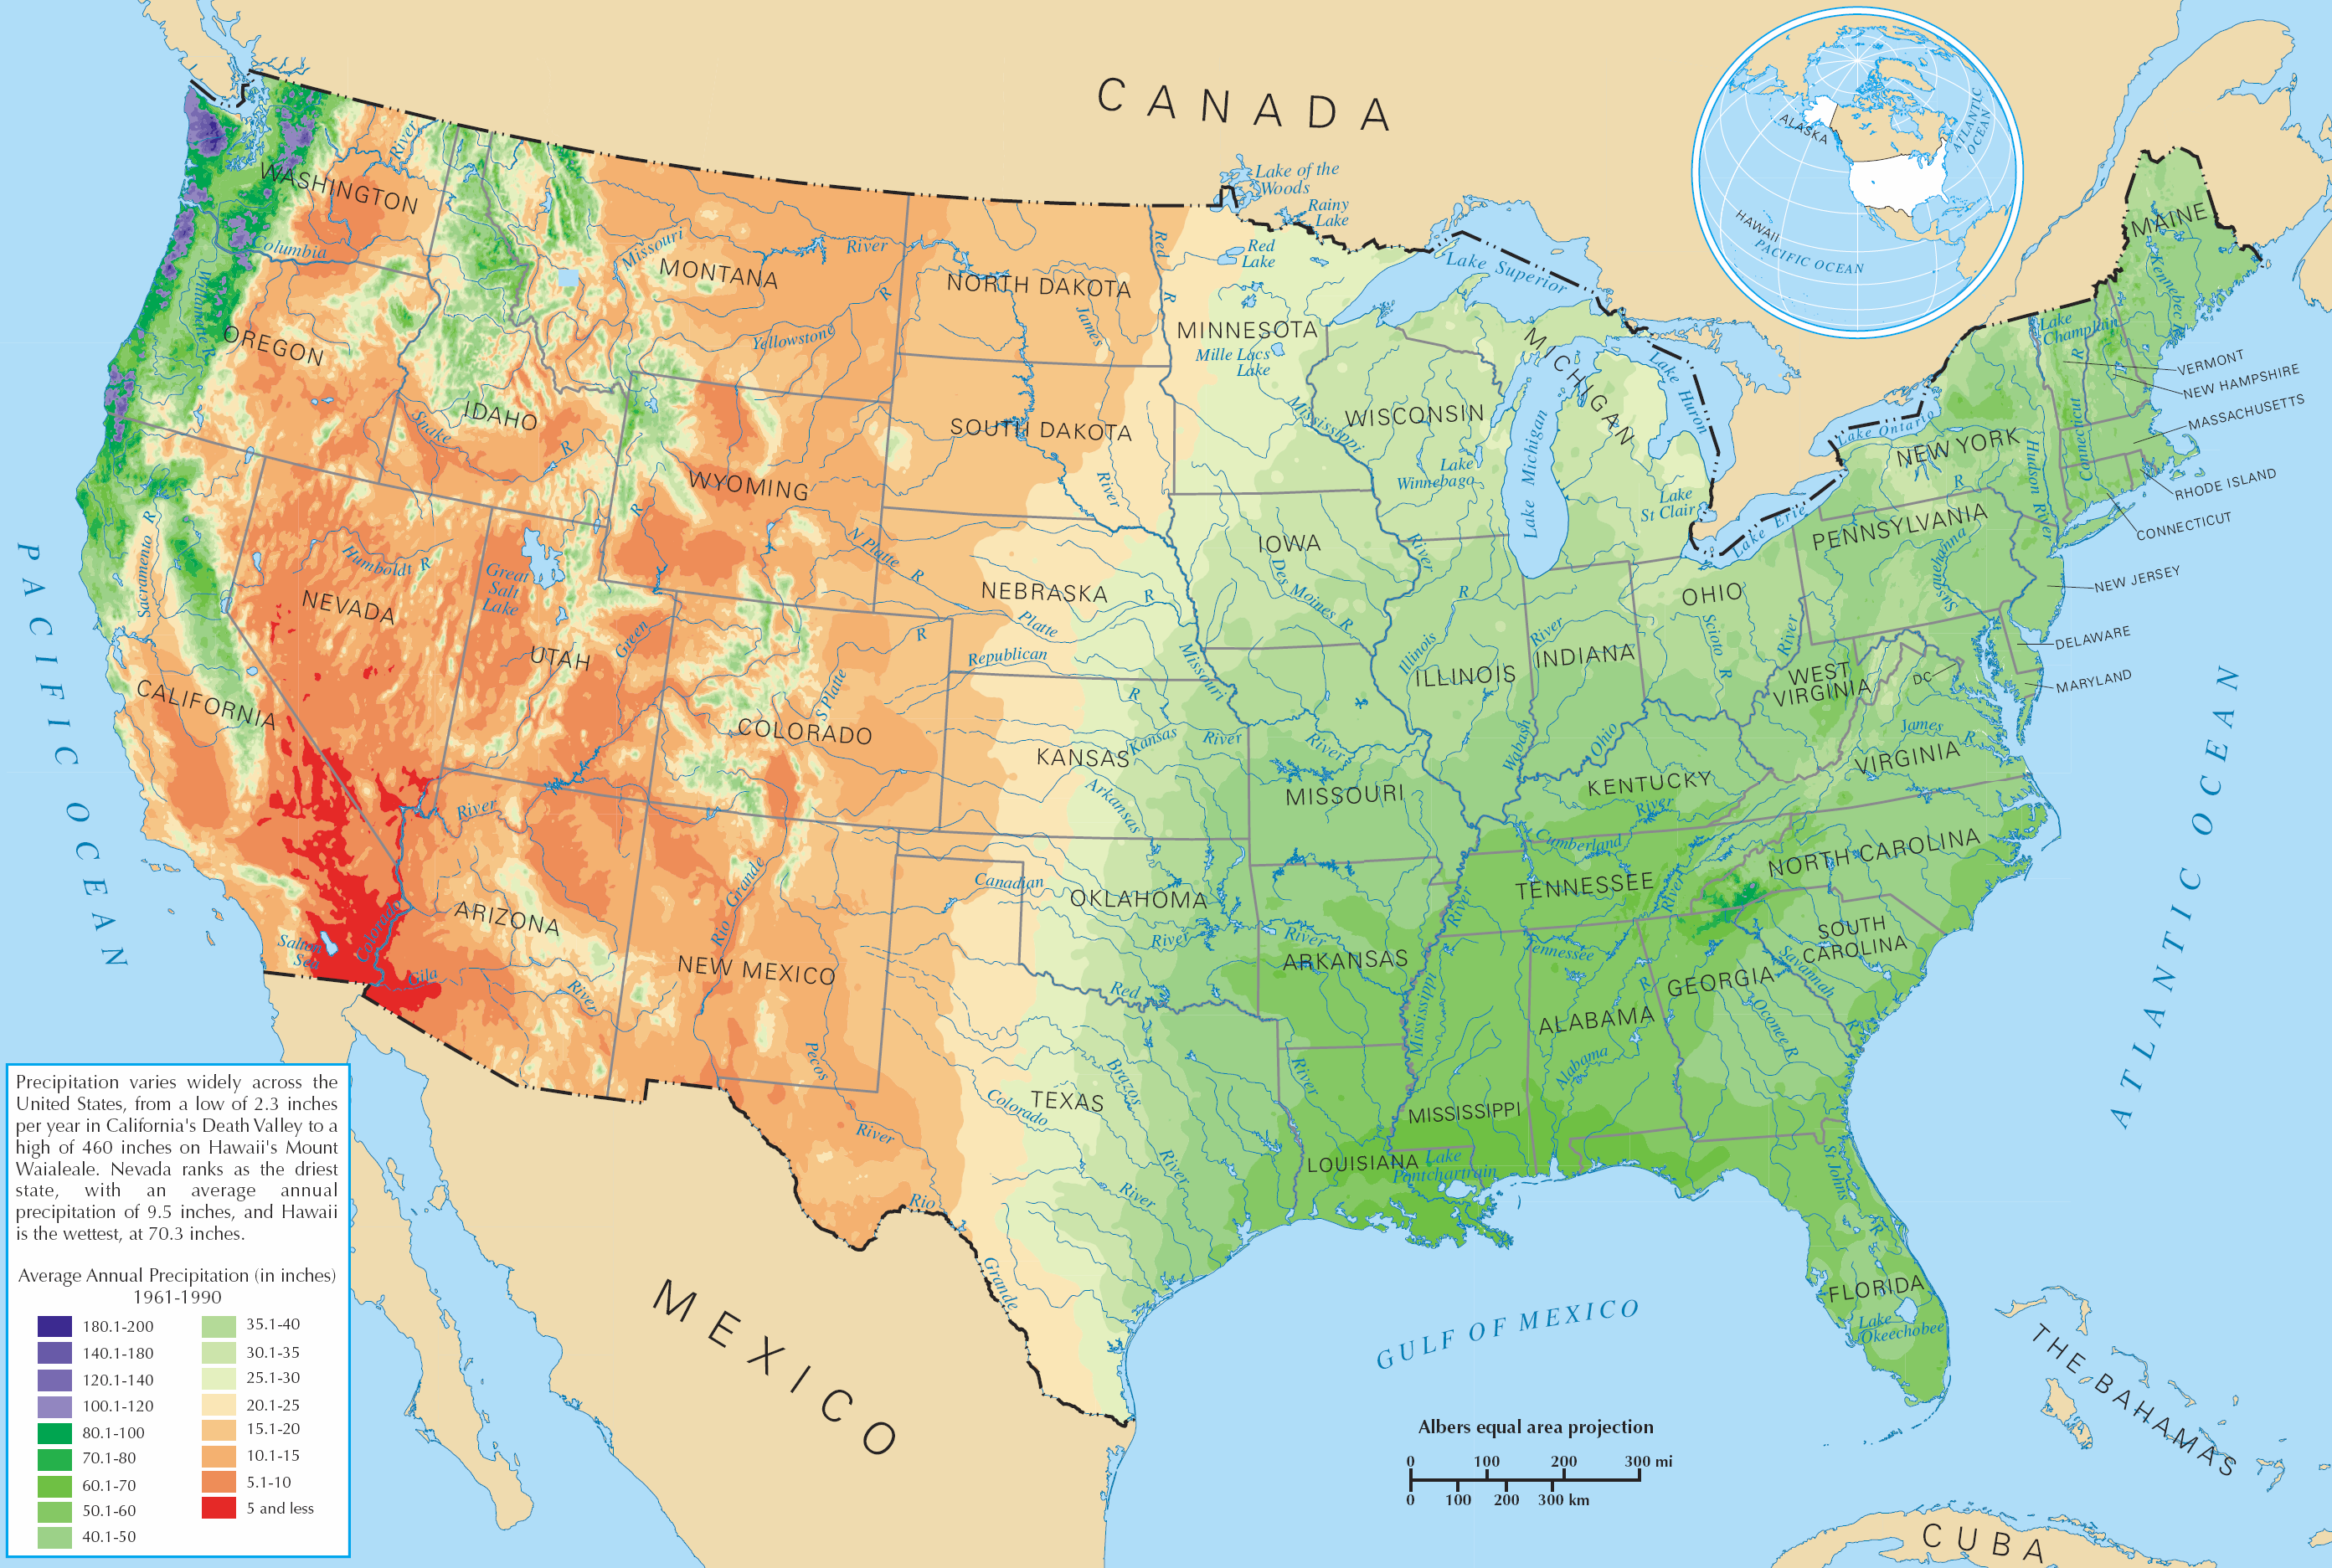 FileAverage precipitation in the lower 48 states of the USApng